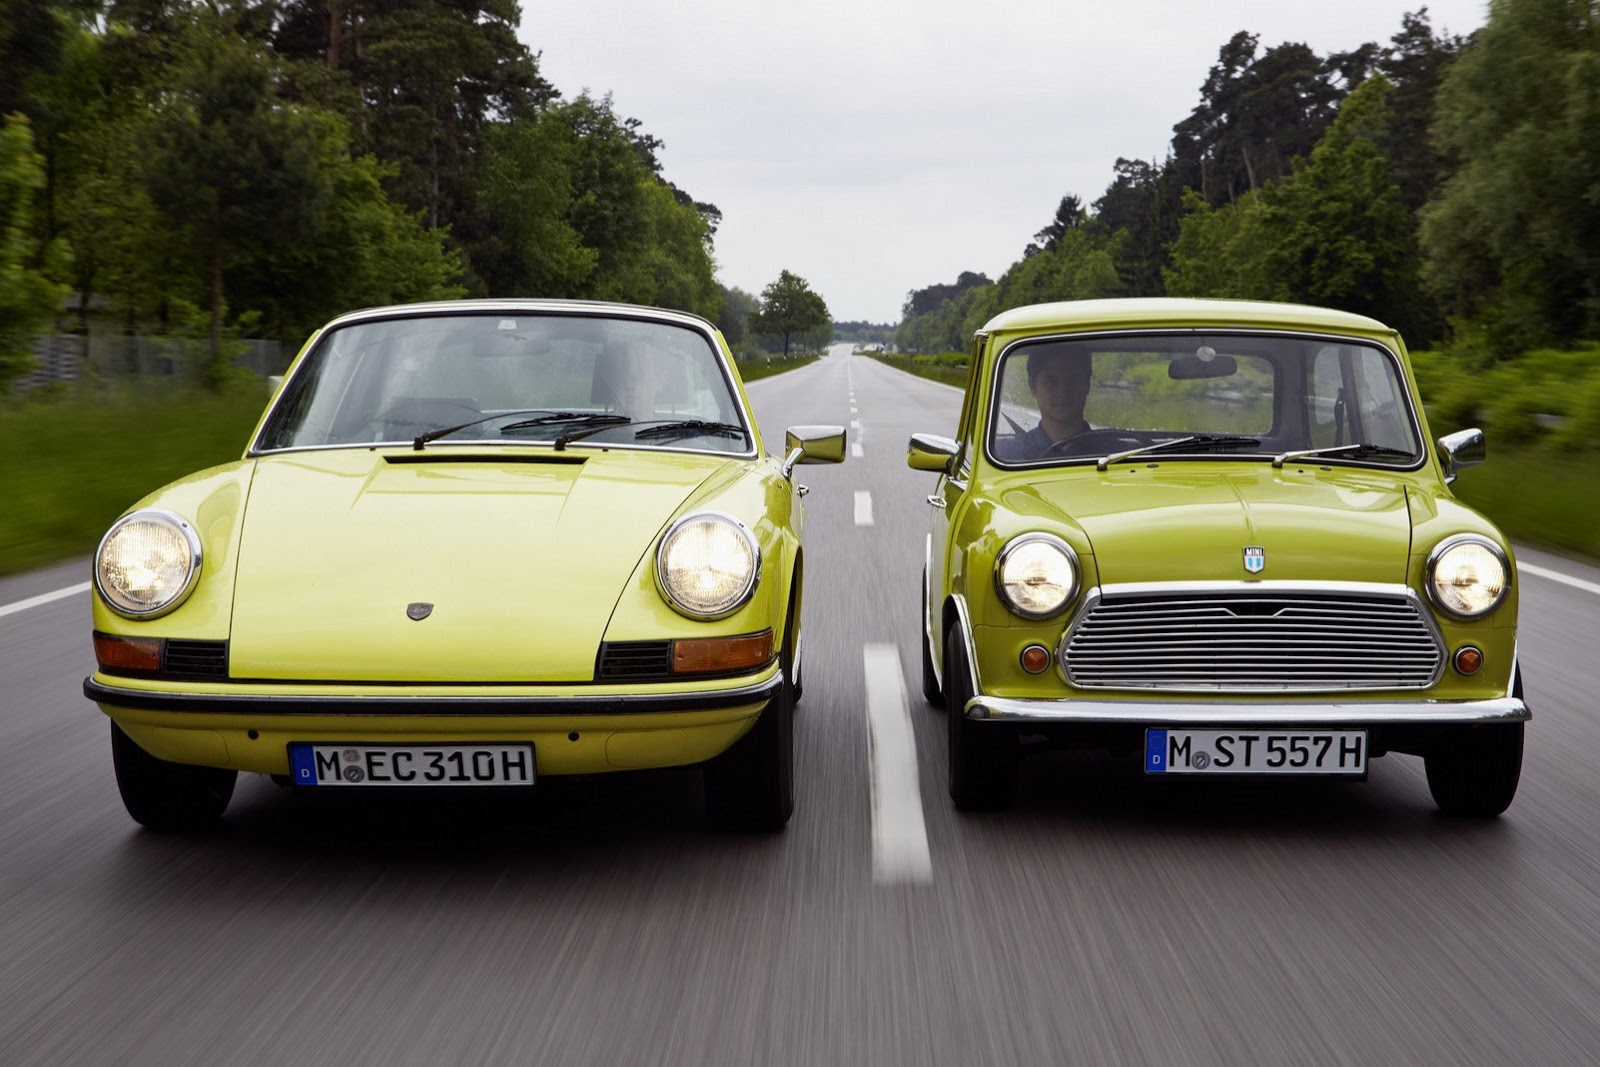 MINI Sends Birthday Wishes To Porscheu0027s 911 Sports Car With Awesome Photo  Shoot News   Top Speed. »